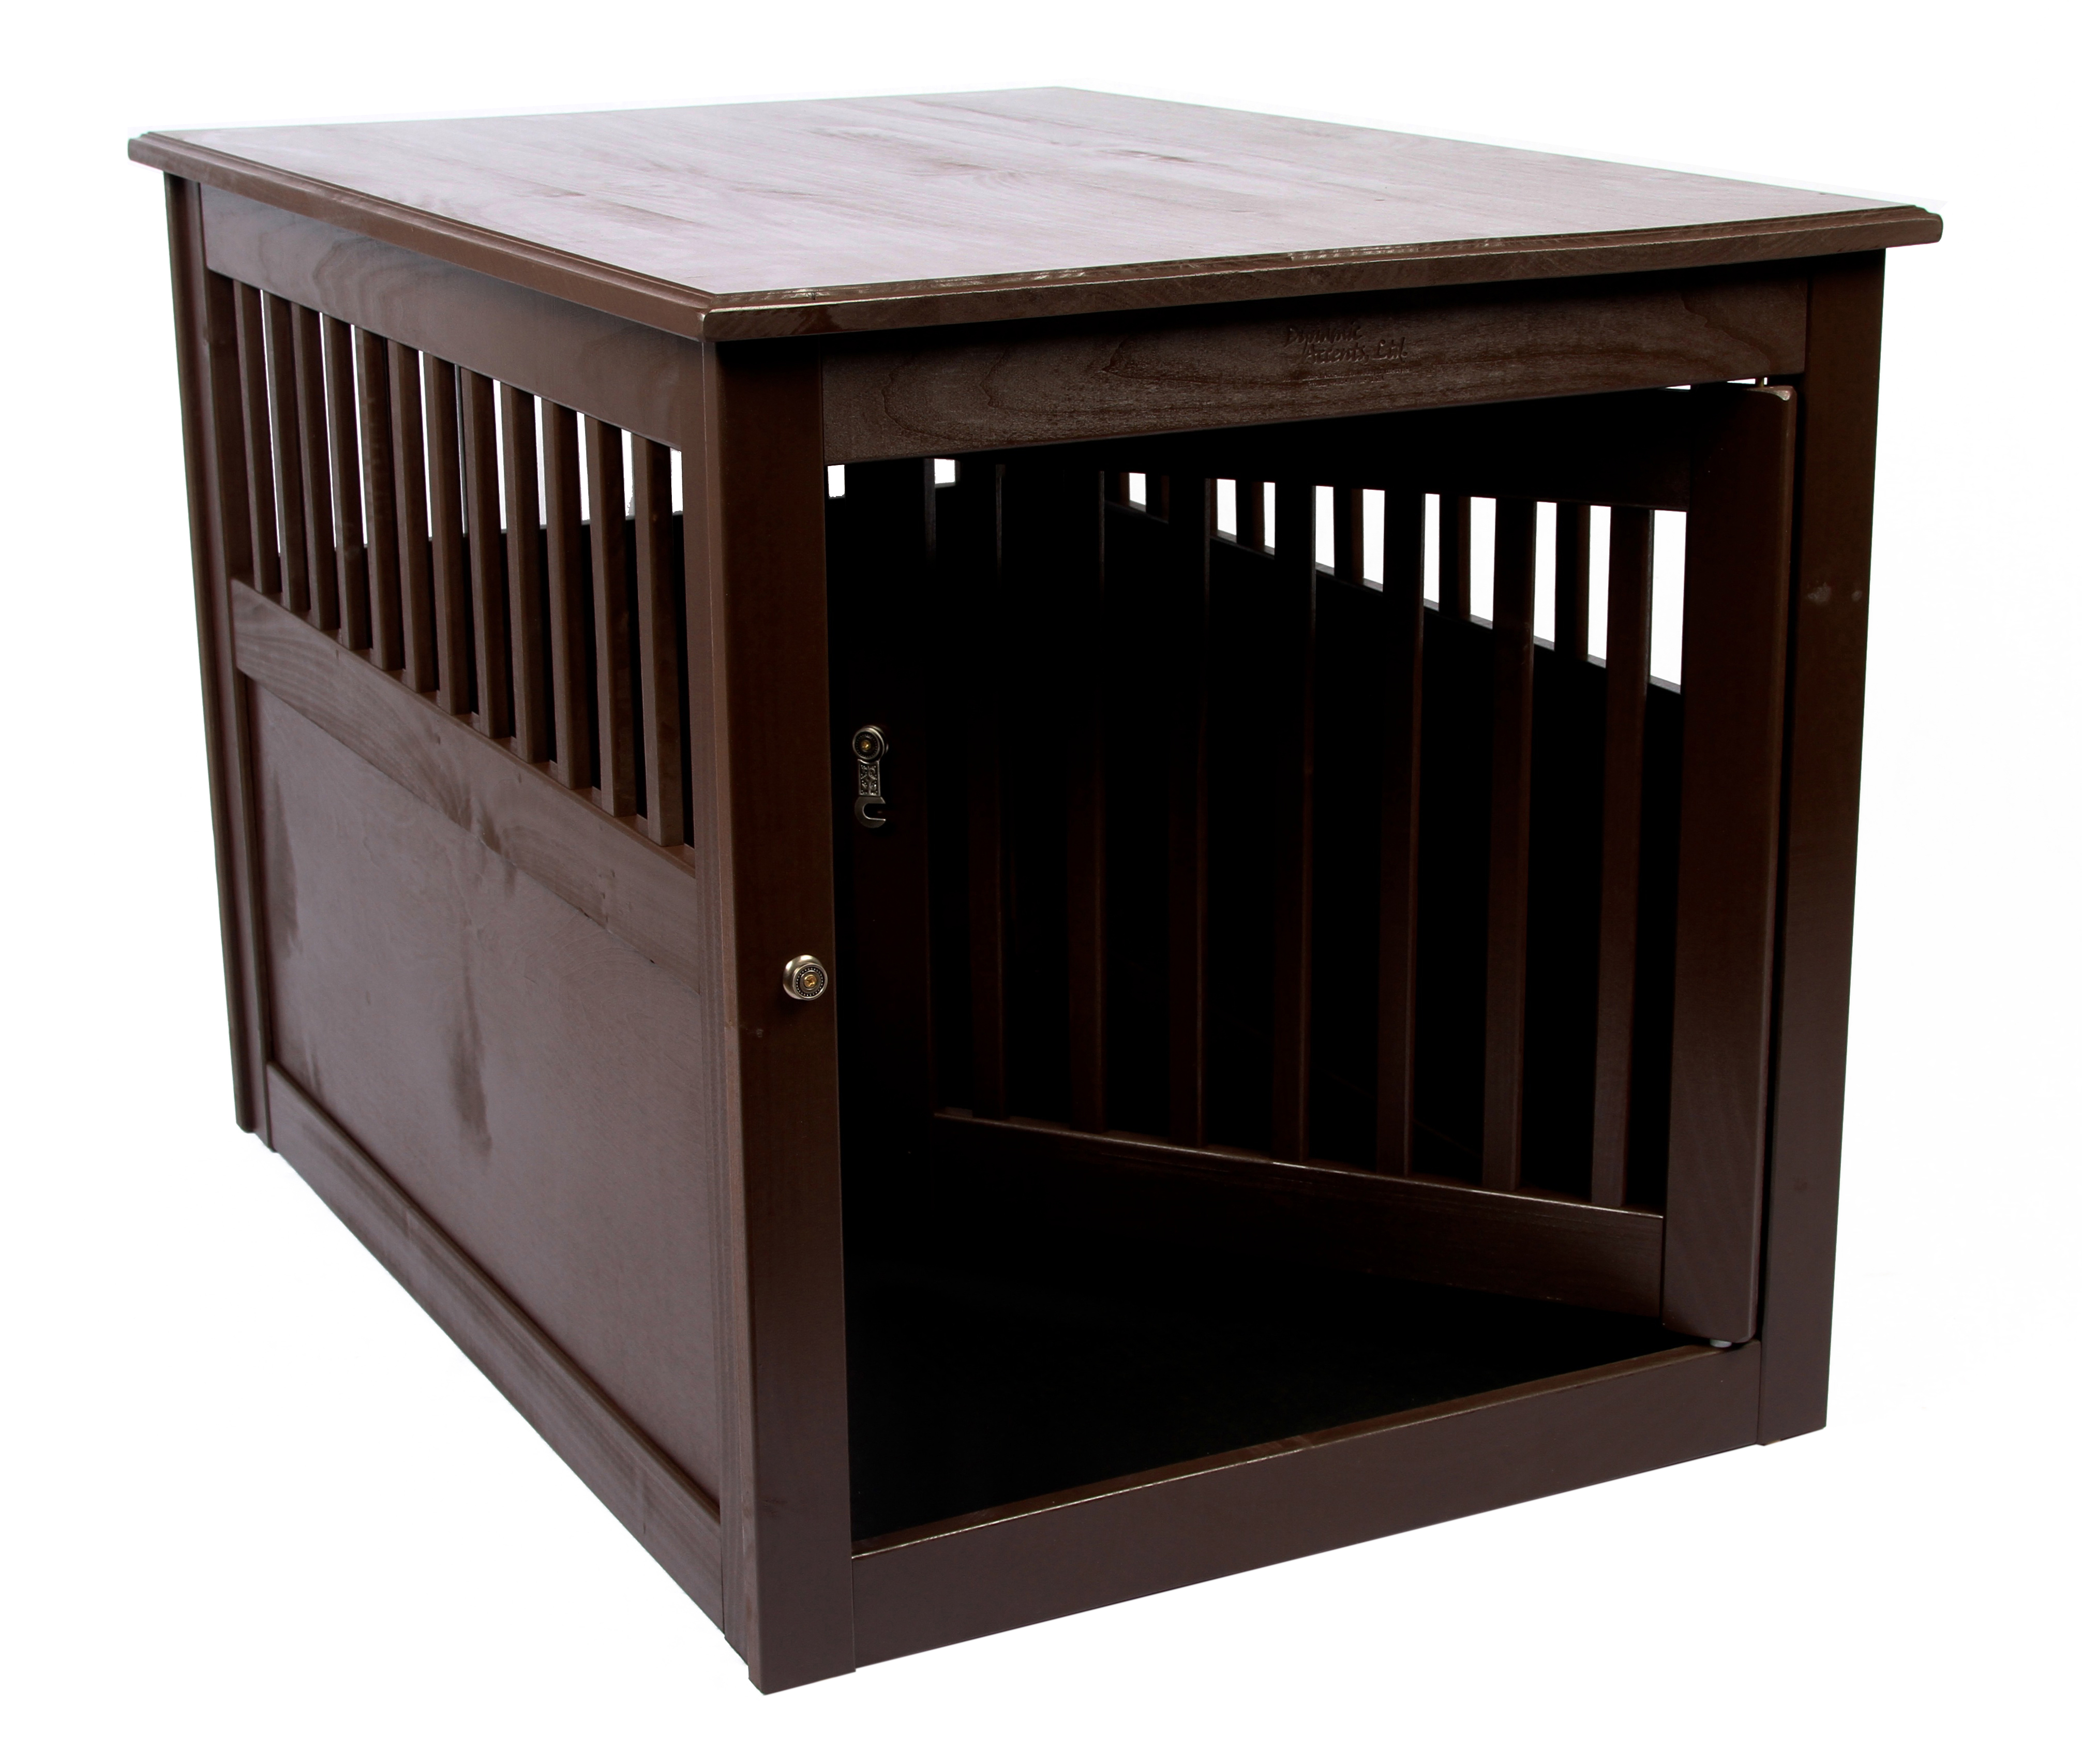 dynamic accents end table large dog pet crate hardwood mahogany 42166